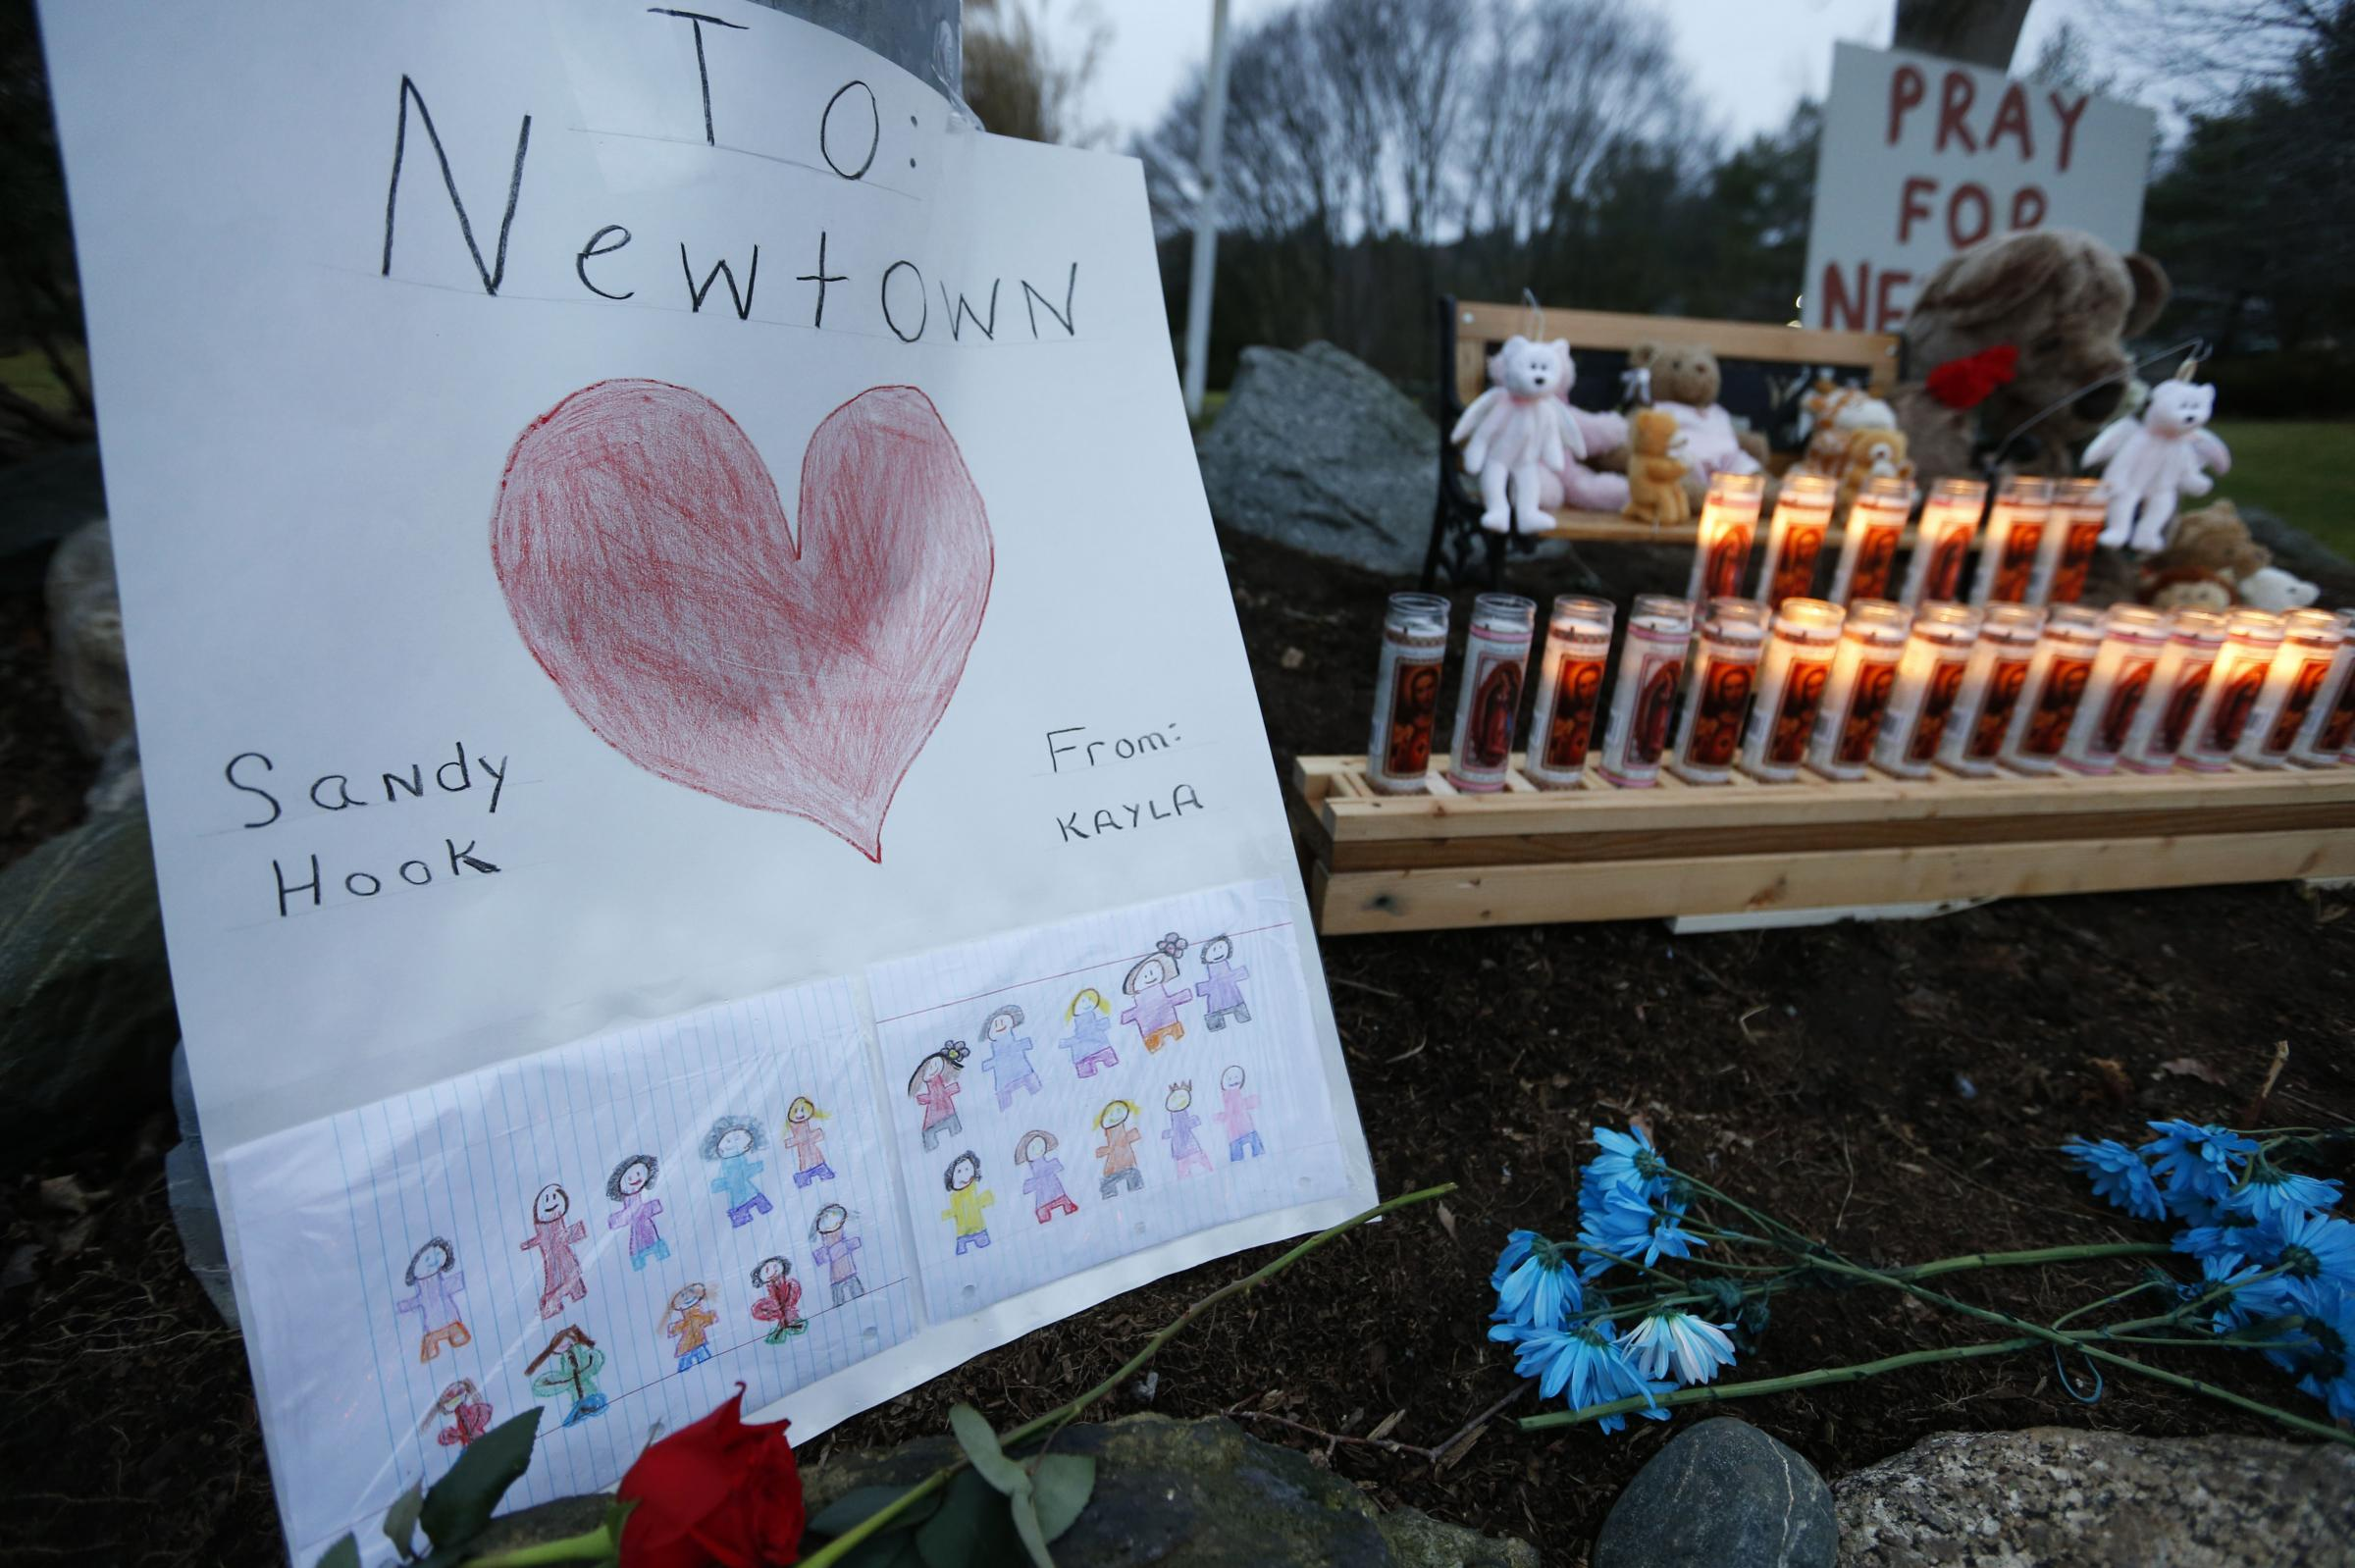 the infamous adam lanza killings in the sandy hook elementary school The independent us  december 2012 shooting at sandy hook elementary school, where adam lanza killed 20 first  two years before the school shooting, said lanza did acknowledge that adult .